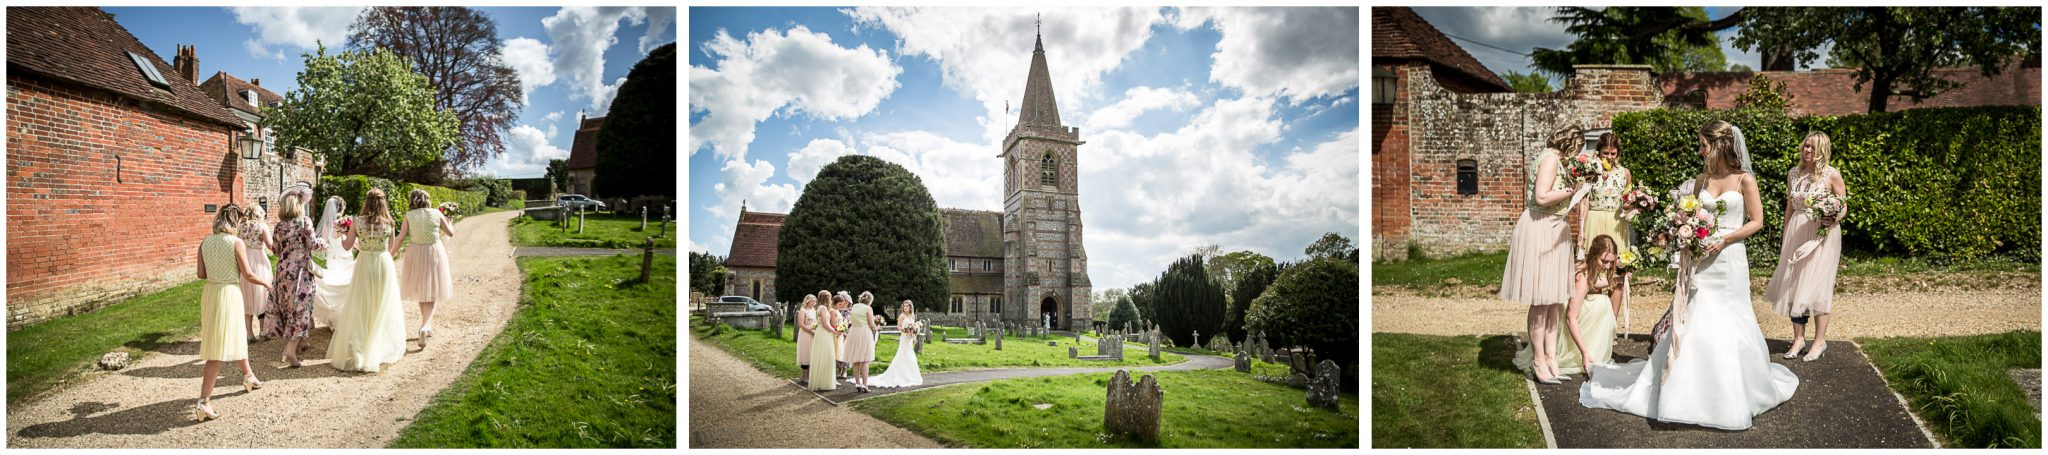 Bride and bridesmaids walking towards Twyford church